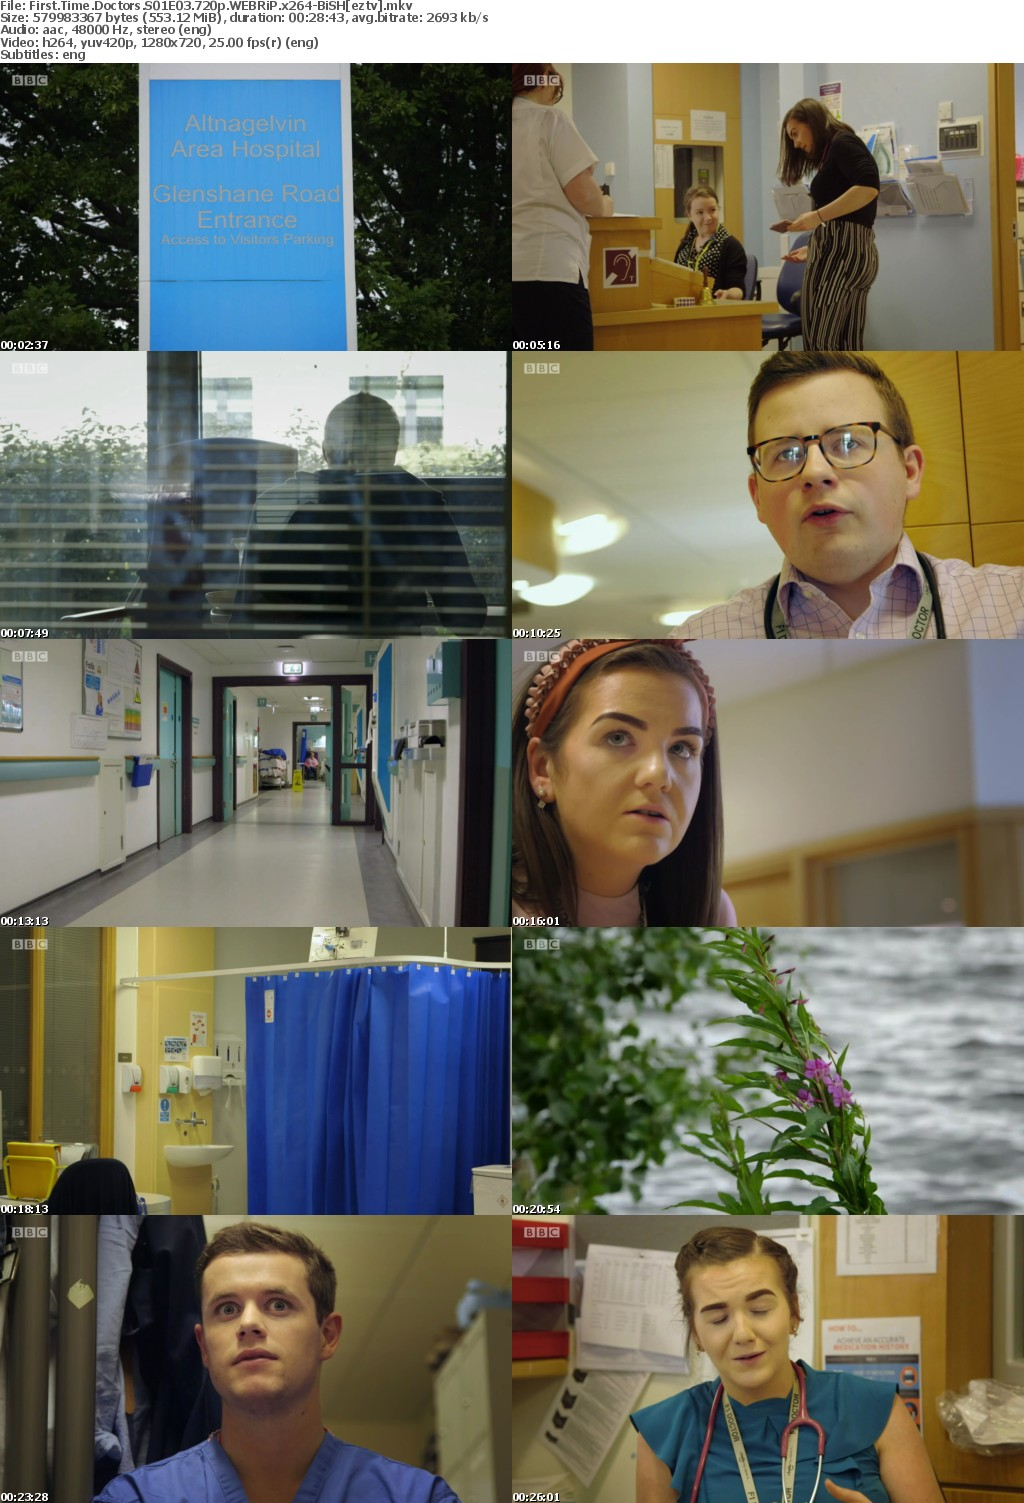 First Time Doctors S01E03 720p WEBRiP x264-BiSH